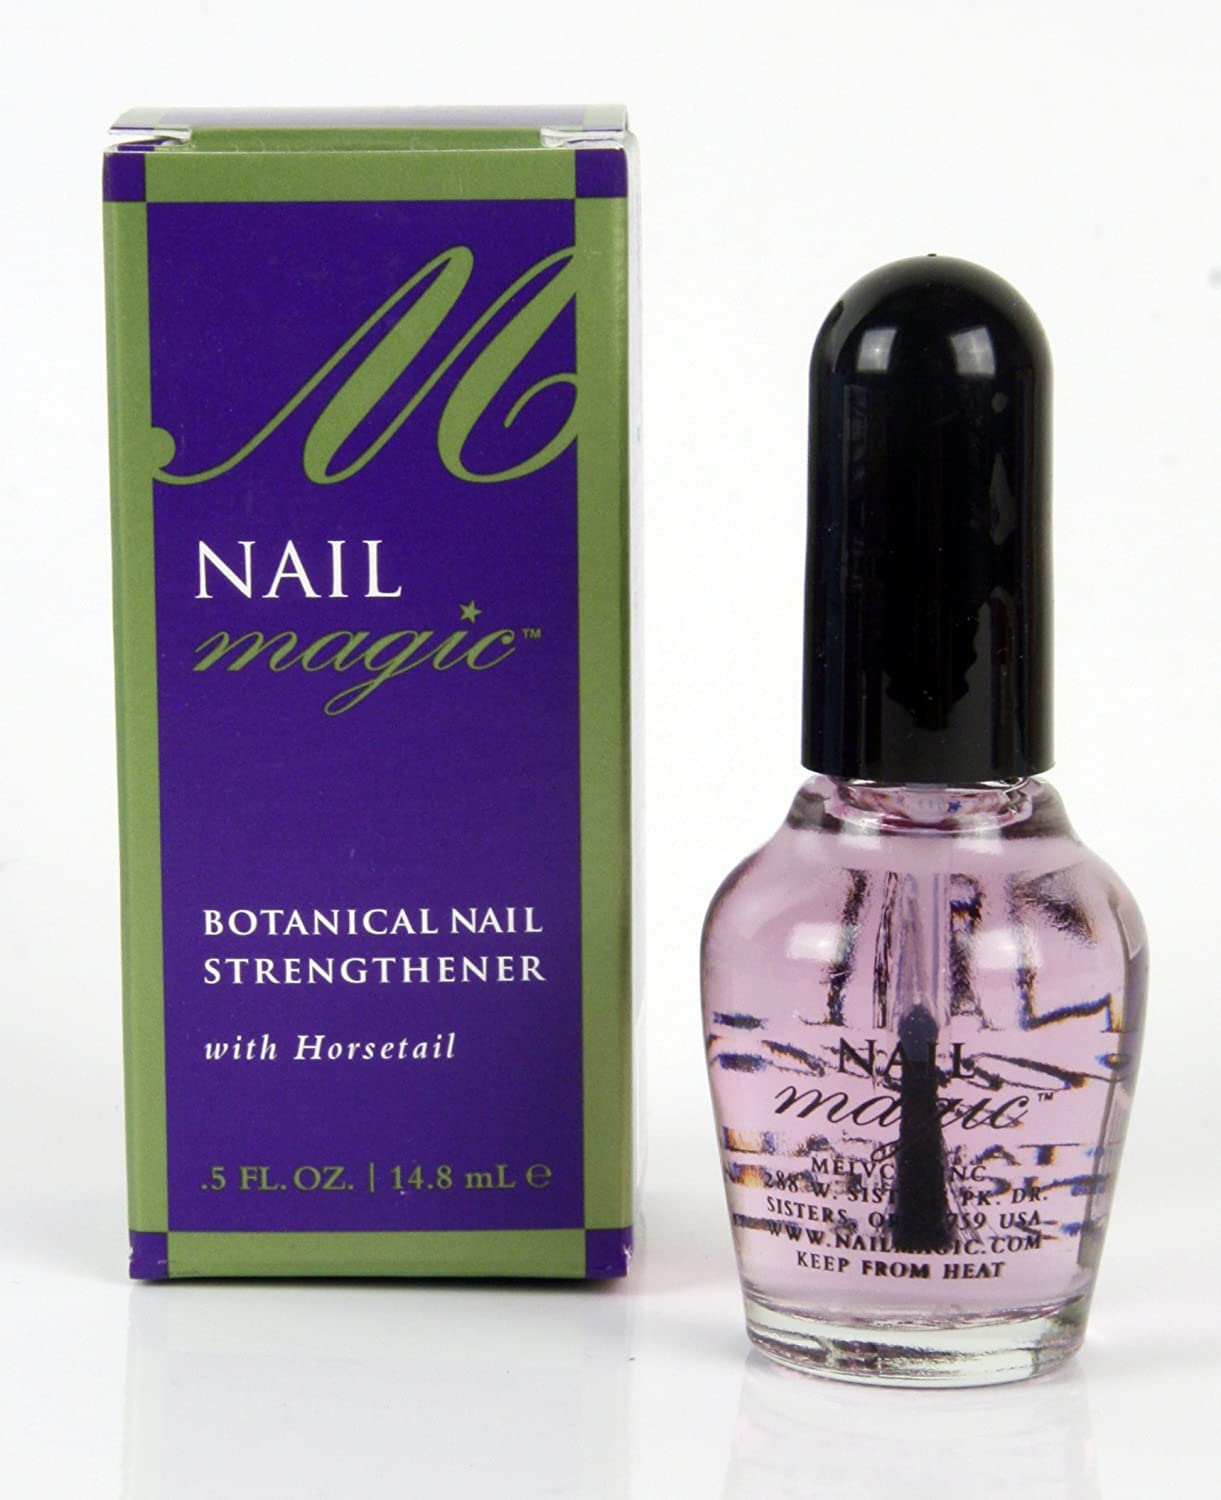 Nail Magic Botanical Nail Strengthener with Horsetail